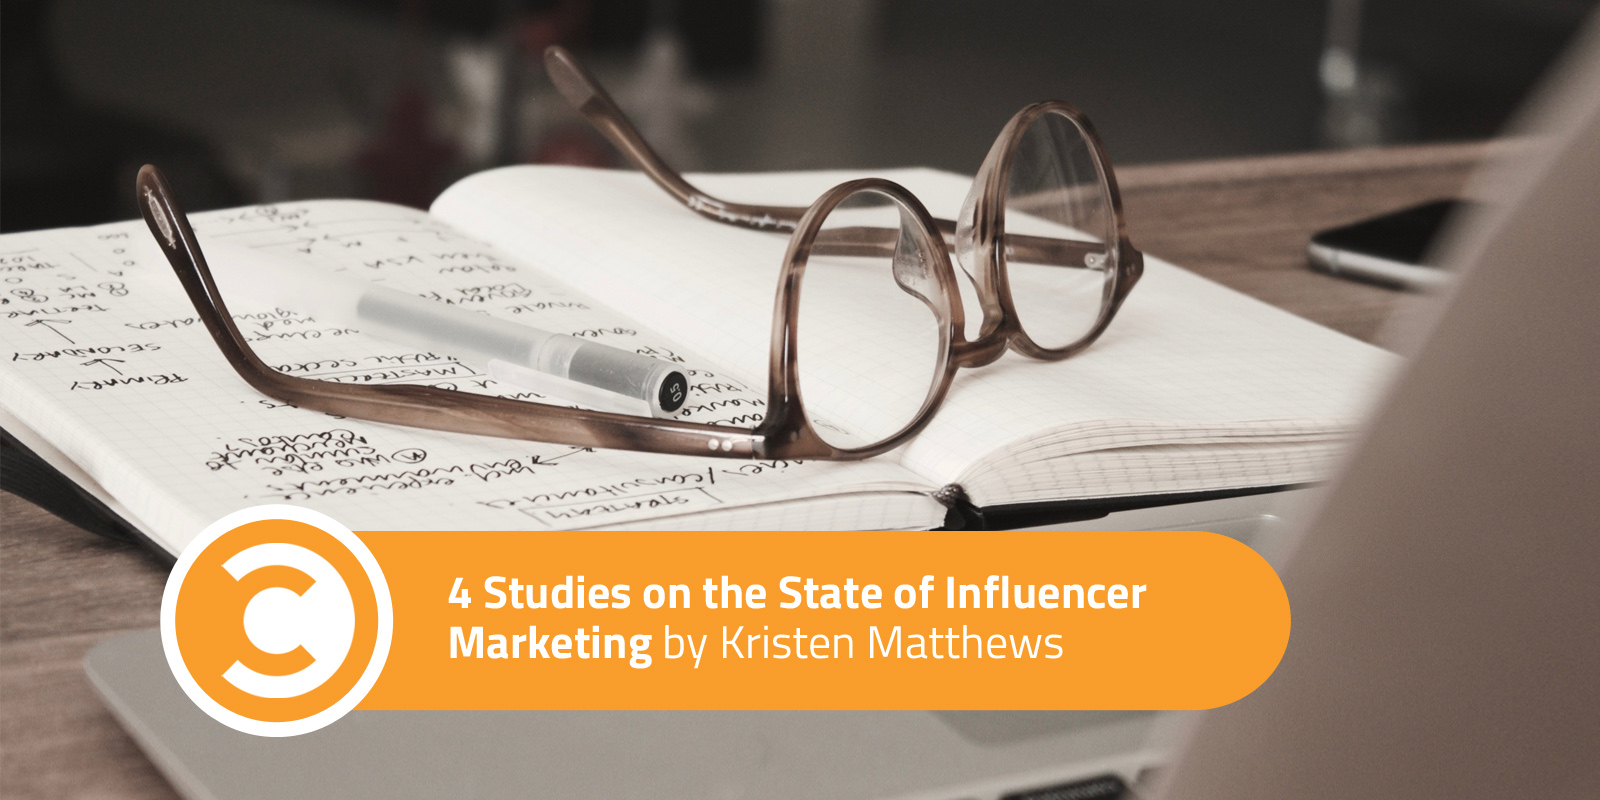 4 Studies on the State of Influencer Marketing